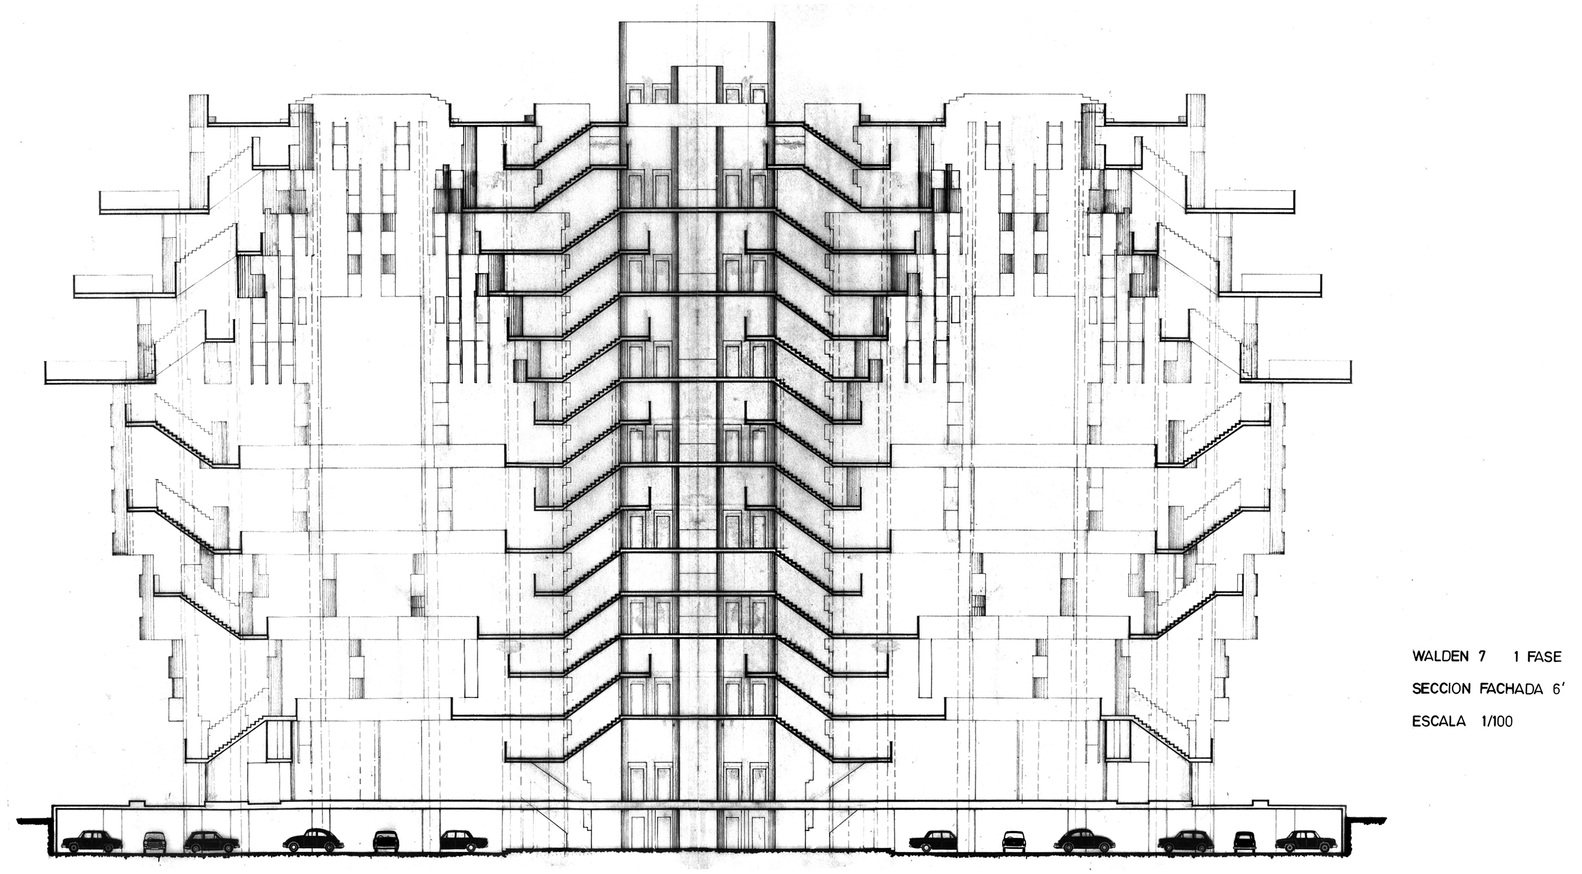 Honda Gx200 Wiring Diagram For Gx240 Engine Gallery Of Ricardo Bofill Why Are Historical Towns More Beautiful